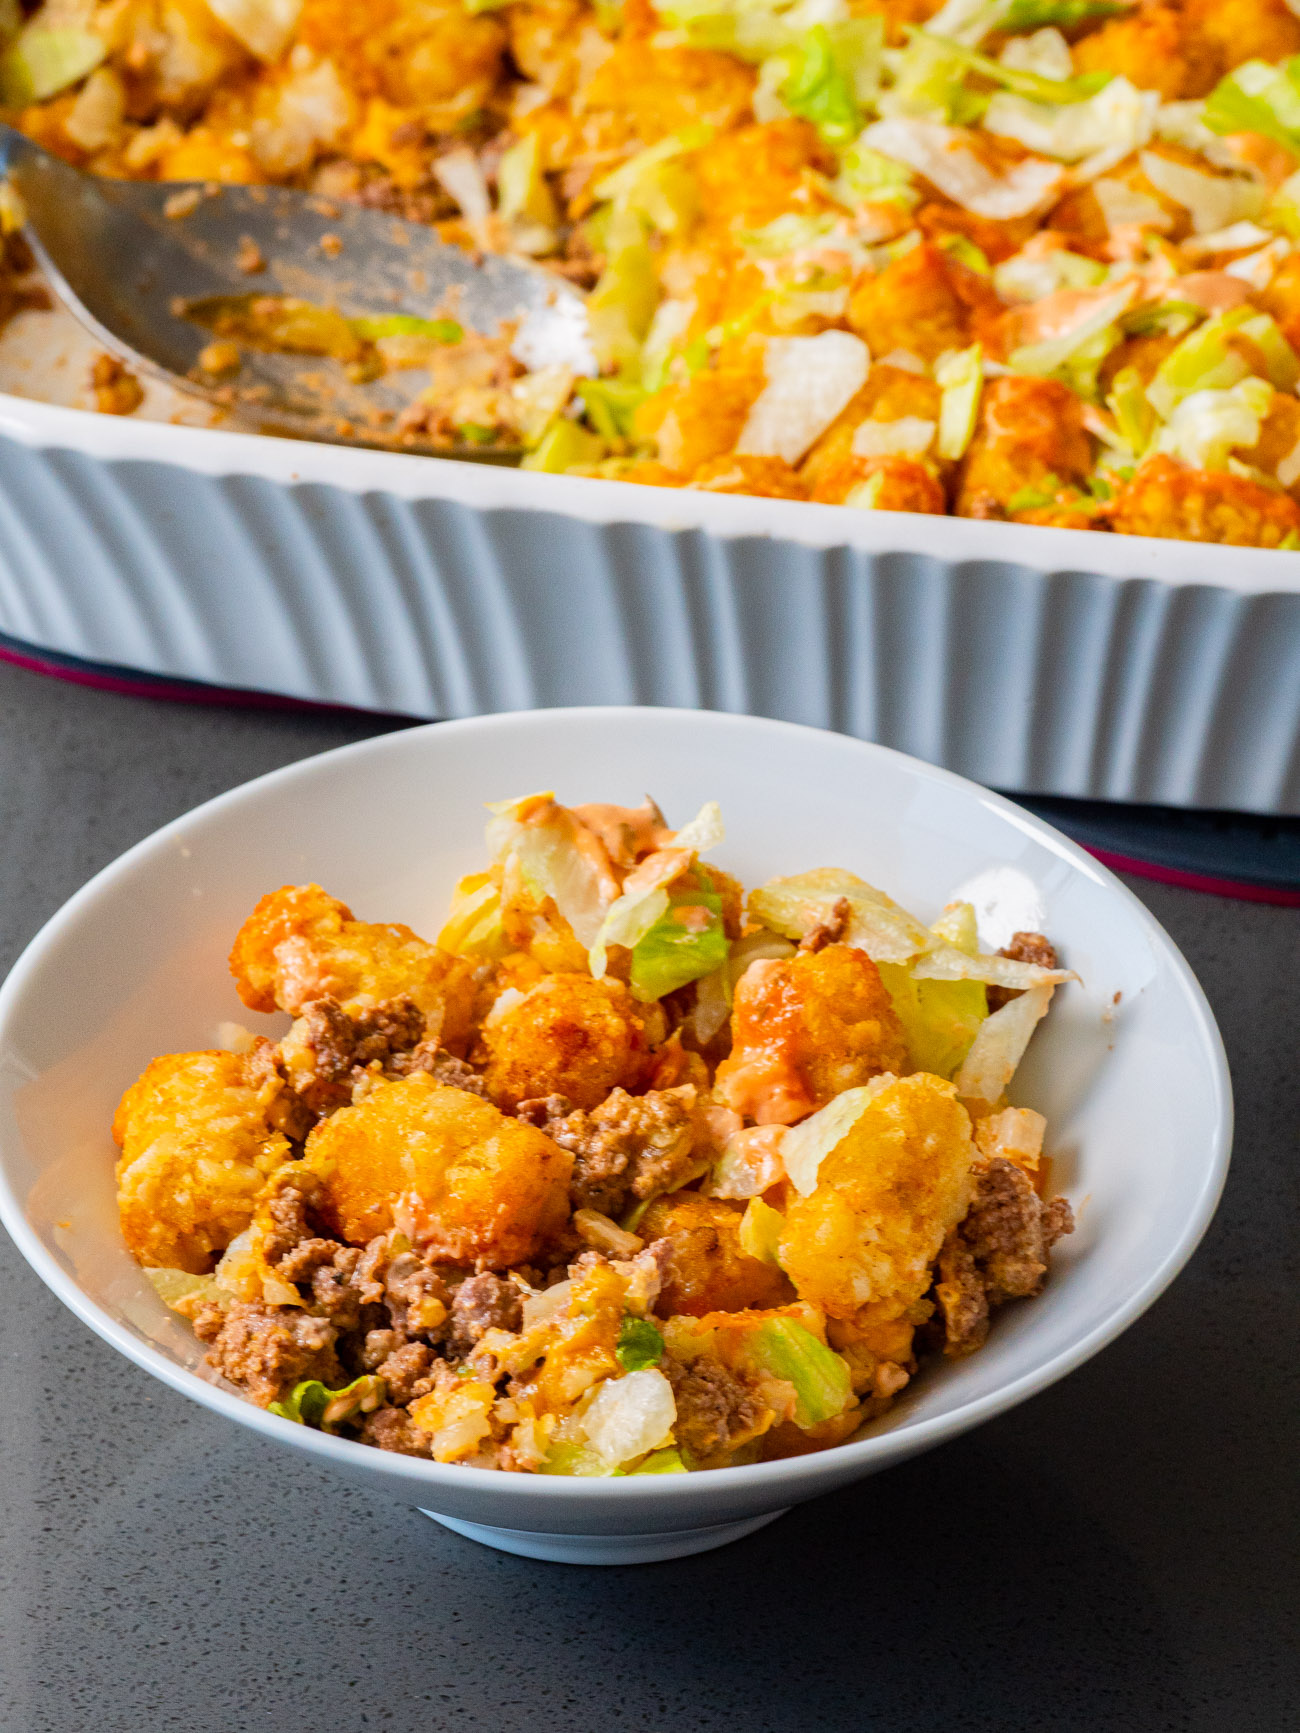 A serving of tater tot casserole on a plate with garnish.